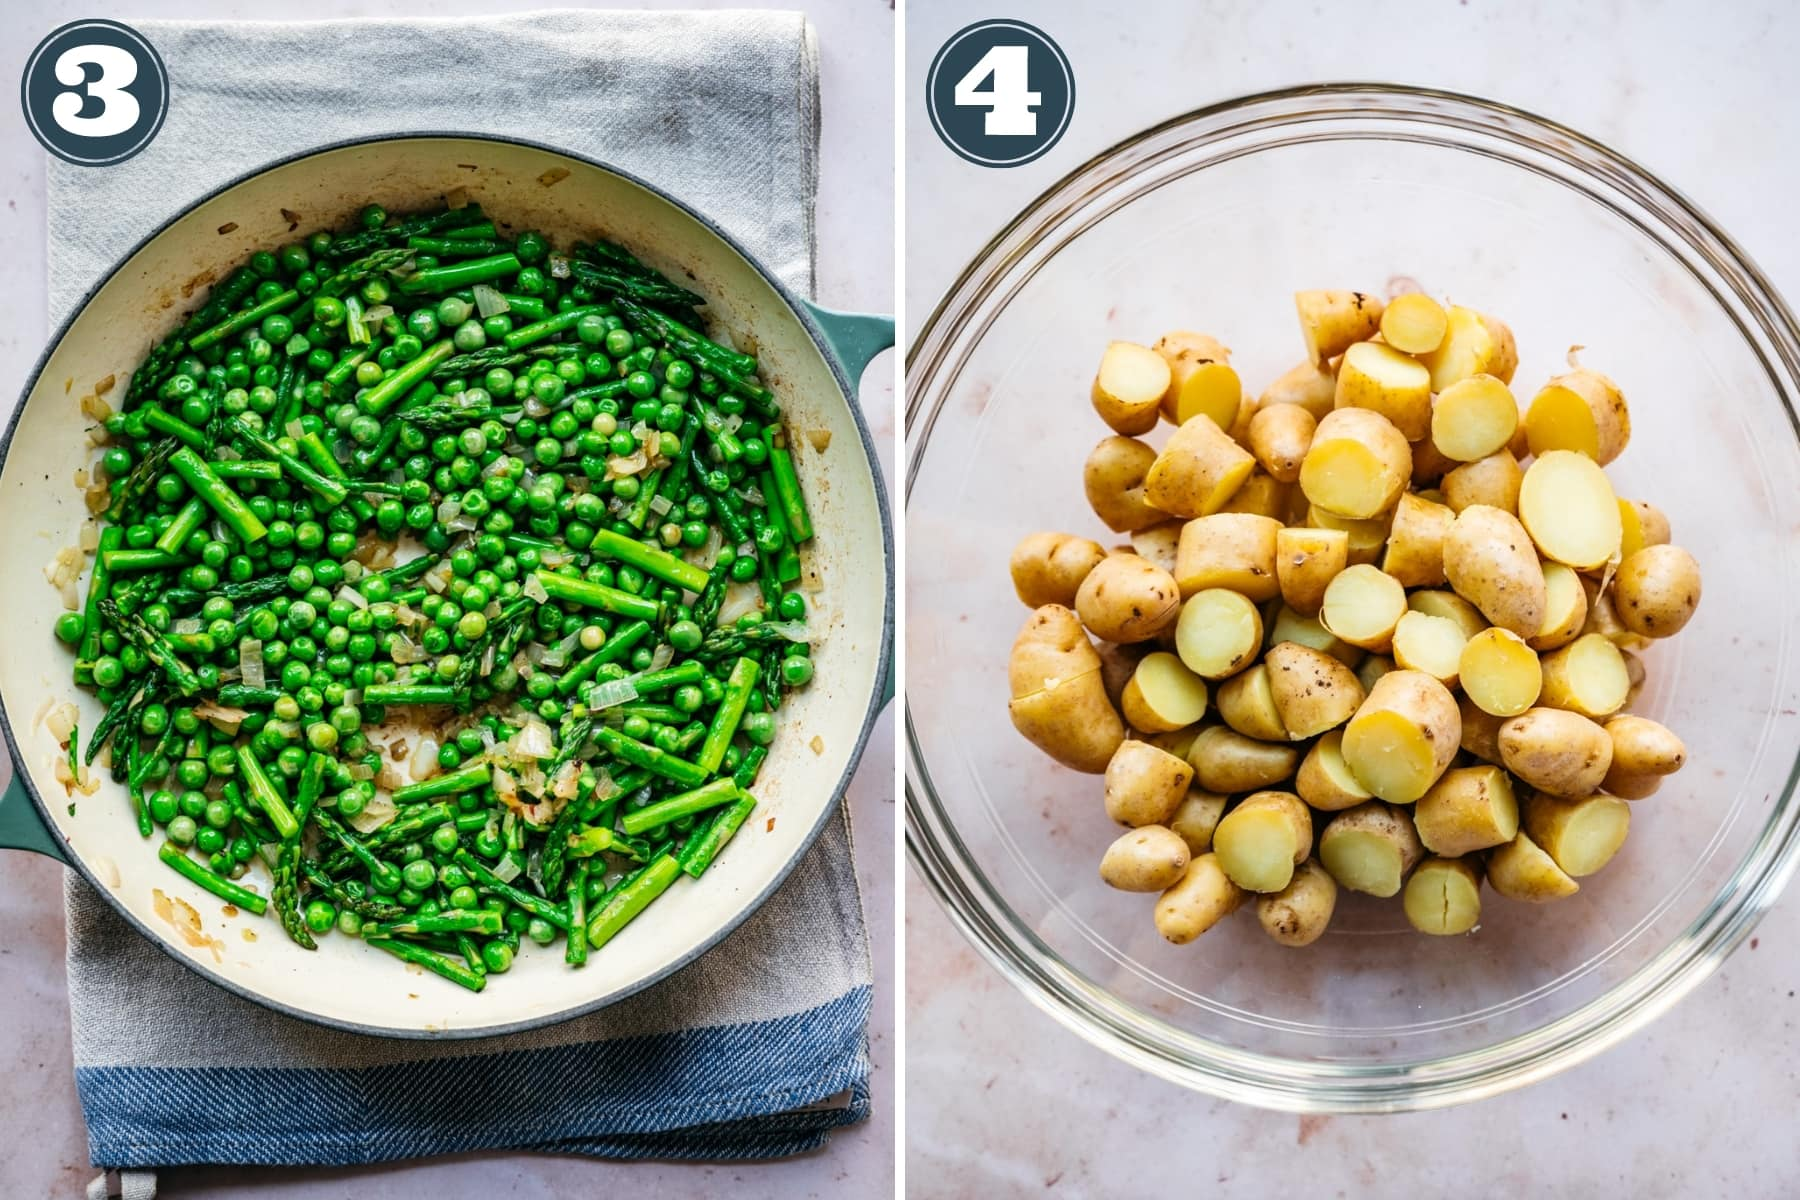 on the left: sautéed asparagus and peas in a skillet. On the right: chopped boiled fingerling potatoes in a glass bowl.